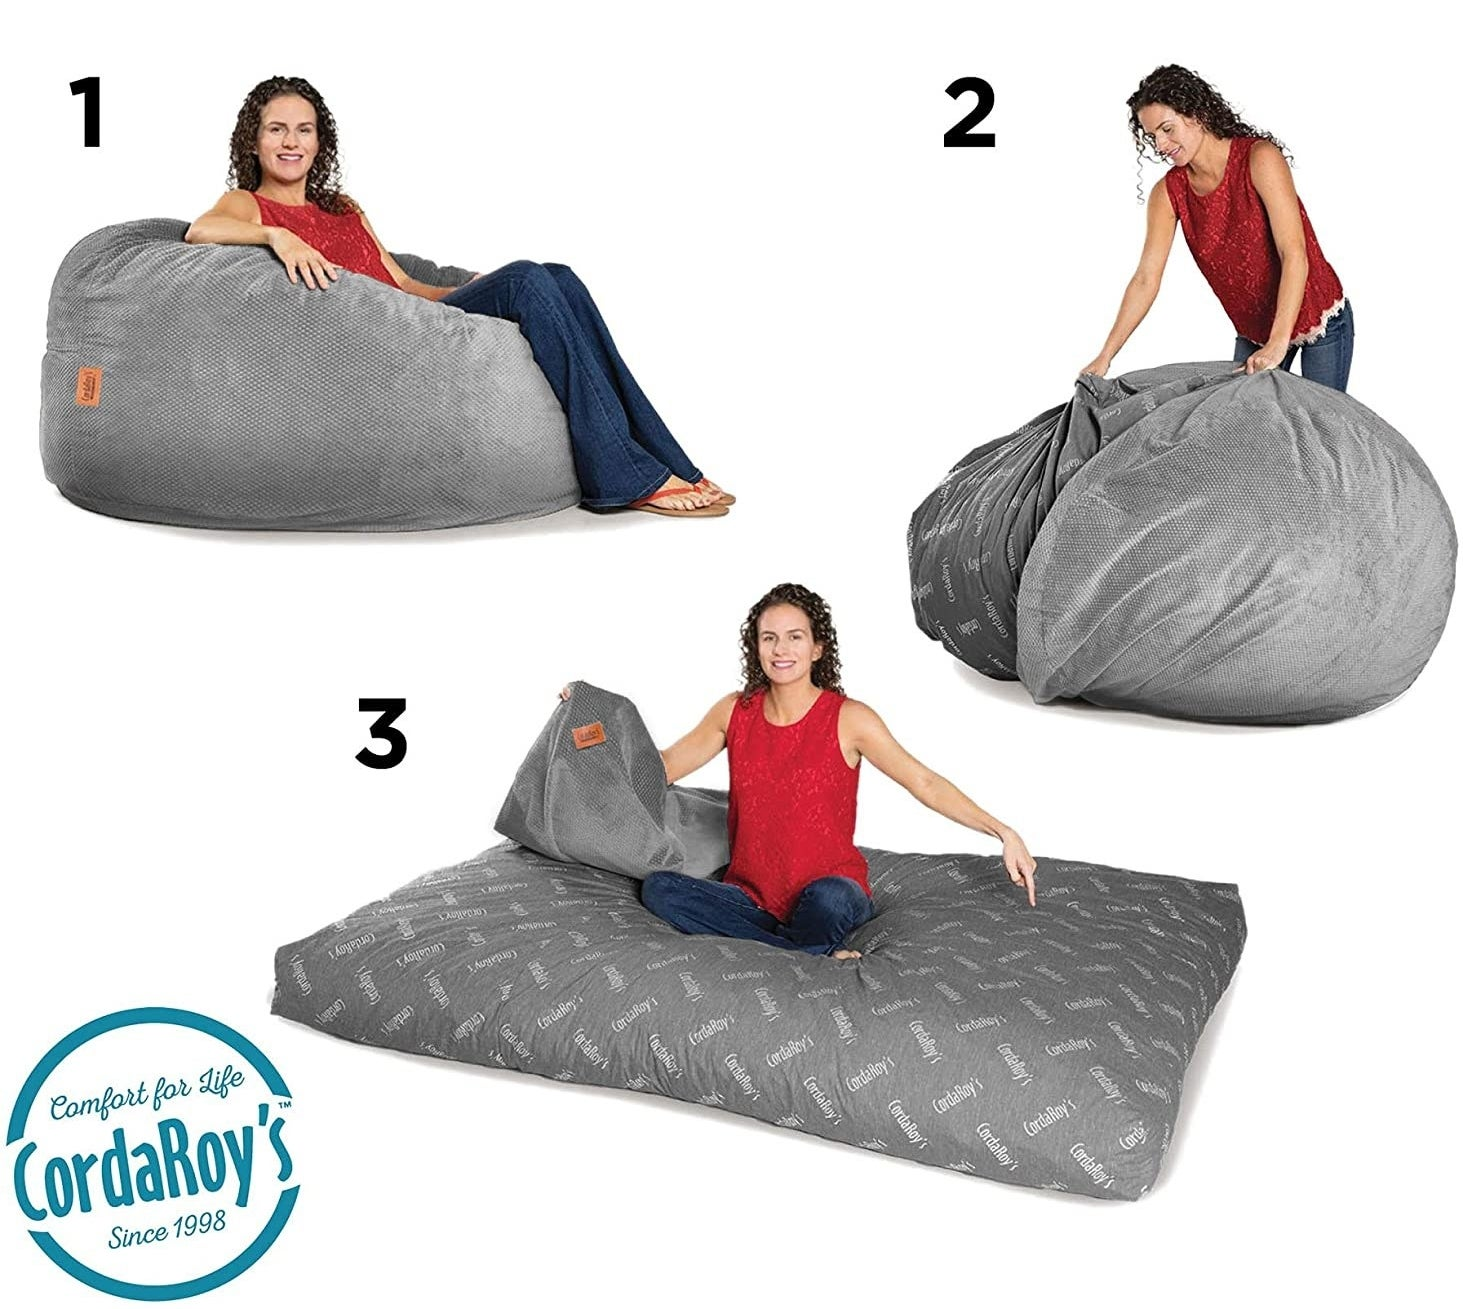 Model showing how to turn the beanbag chair into a bed